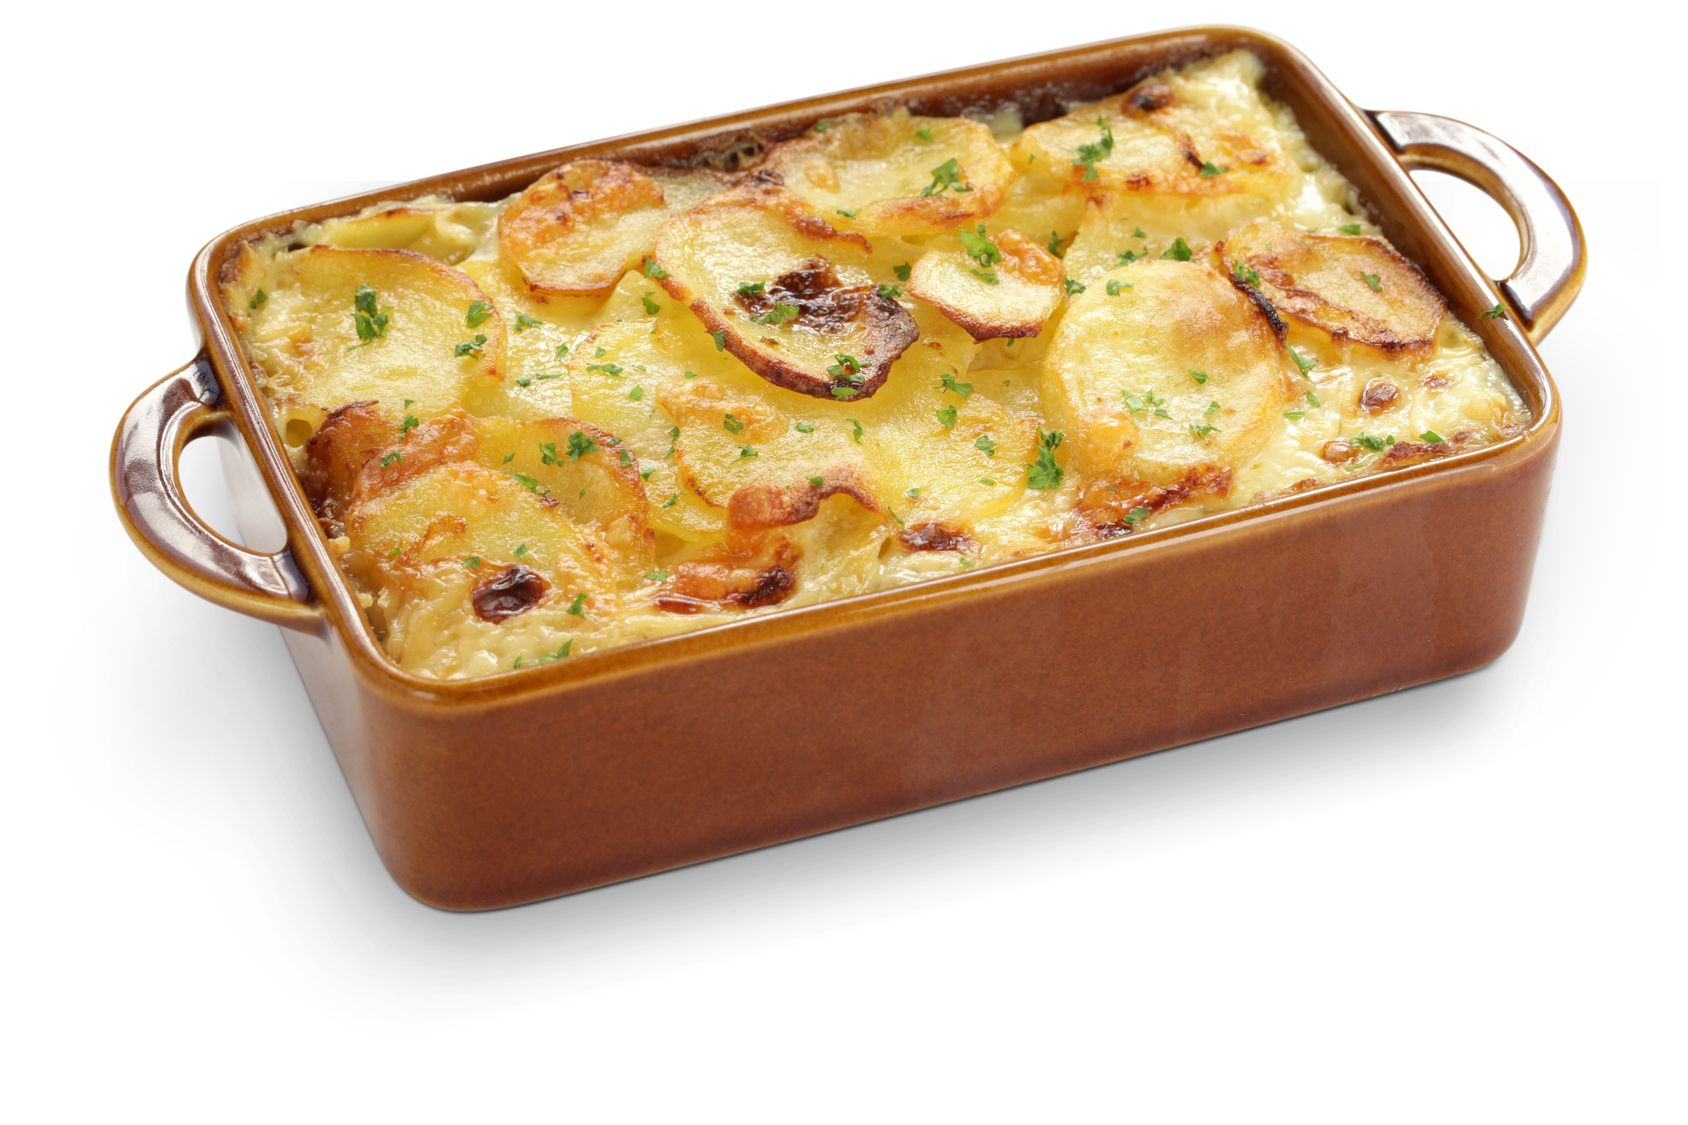 gratin dauphinois met maredsous vtm koken. Black Bedroom Furniture Sets. Home Design Ideas